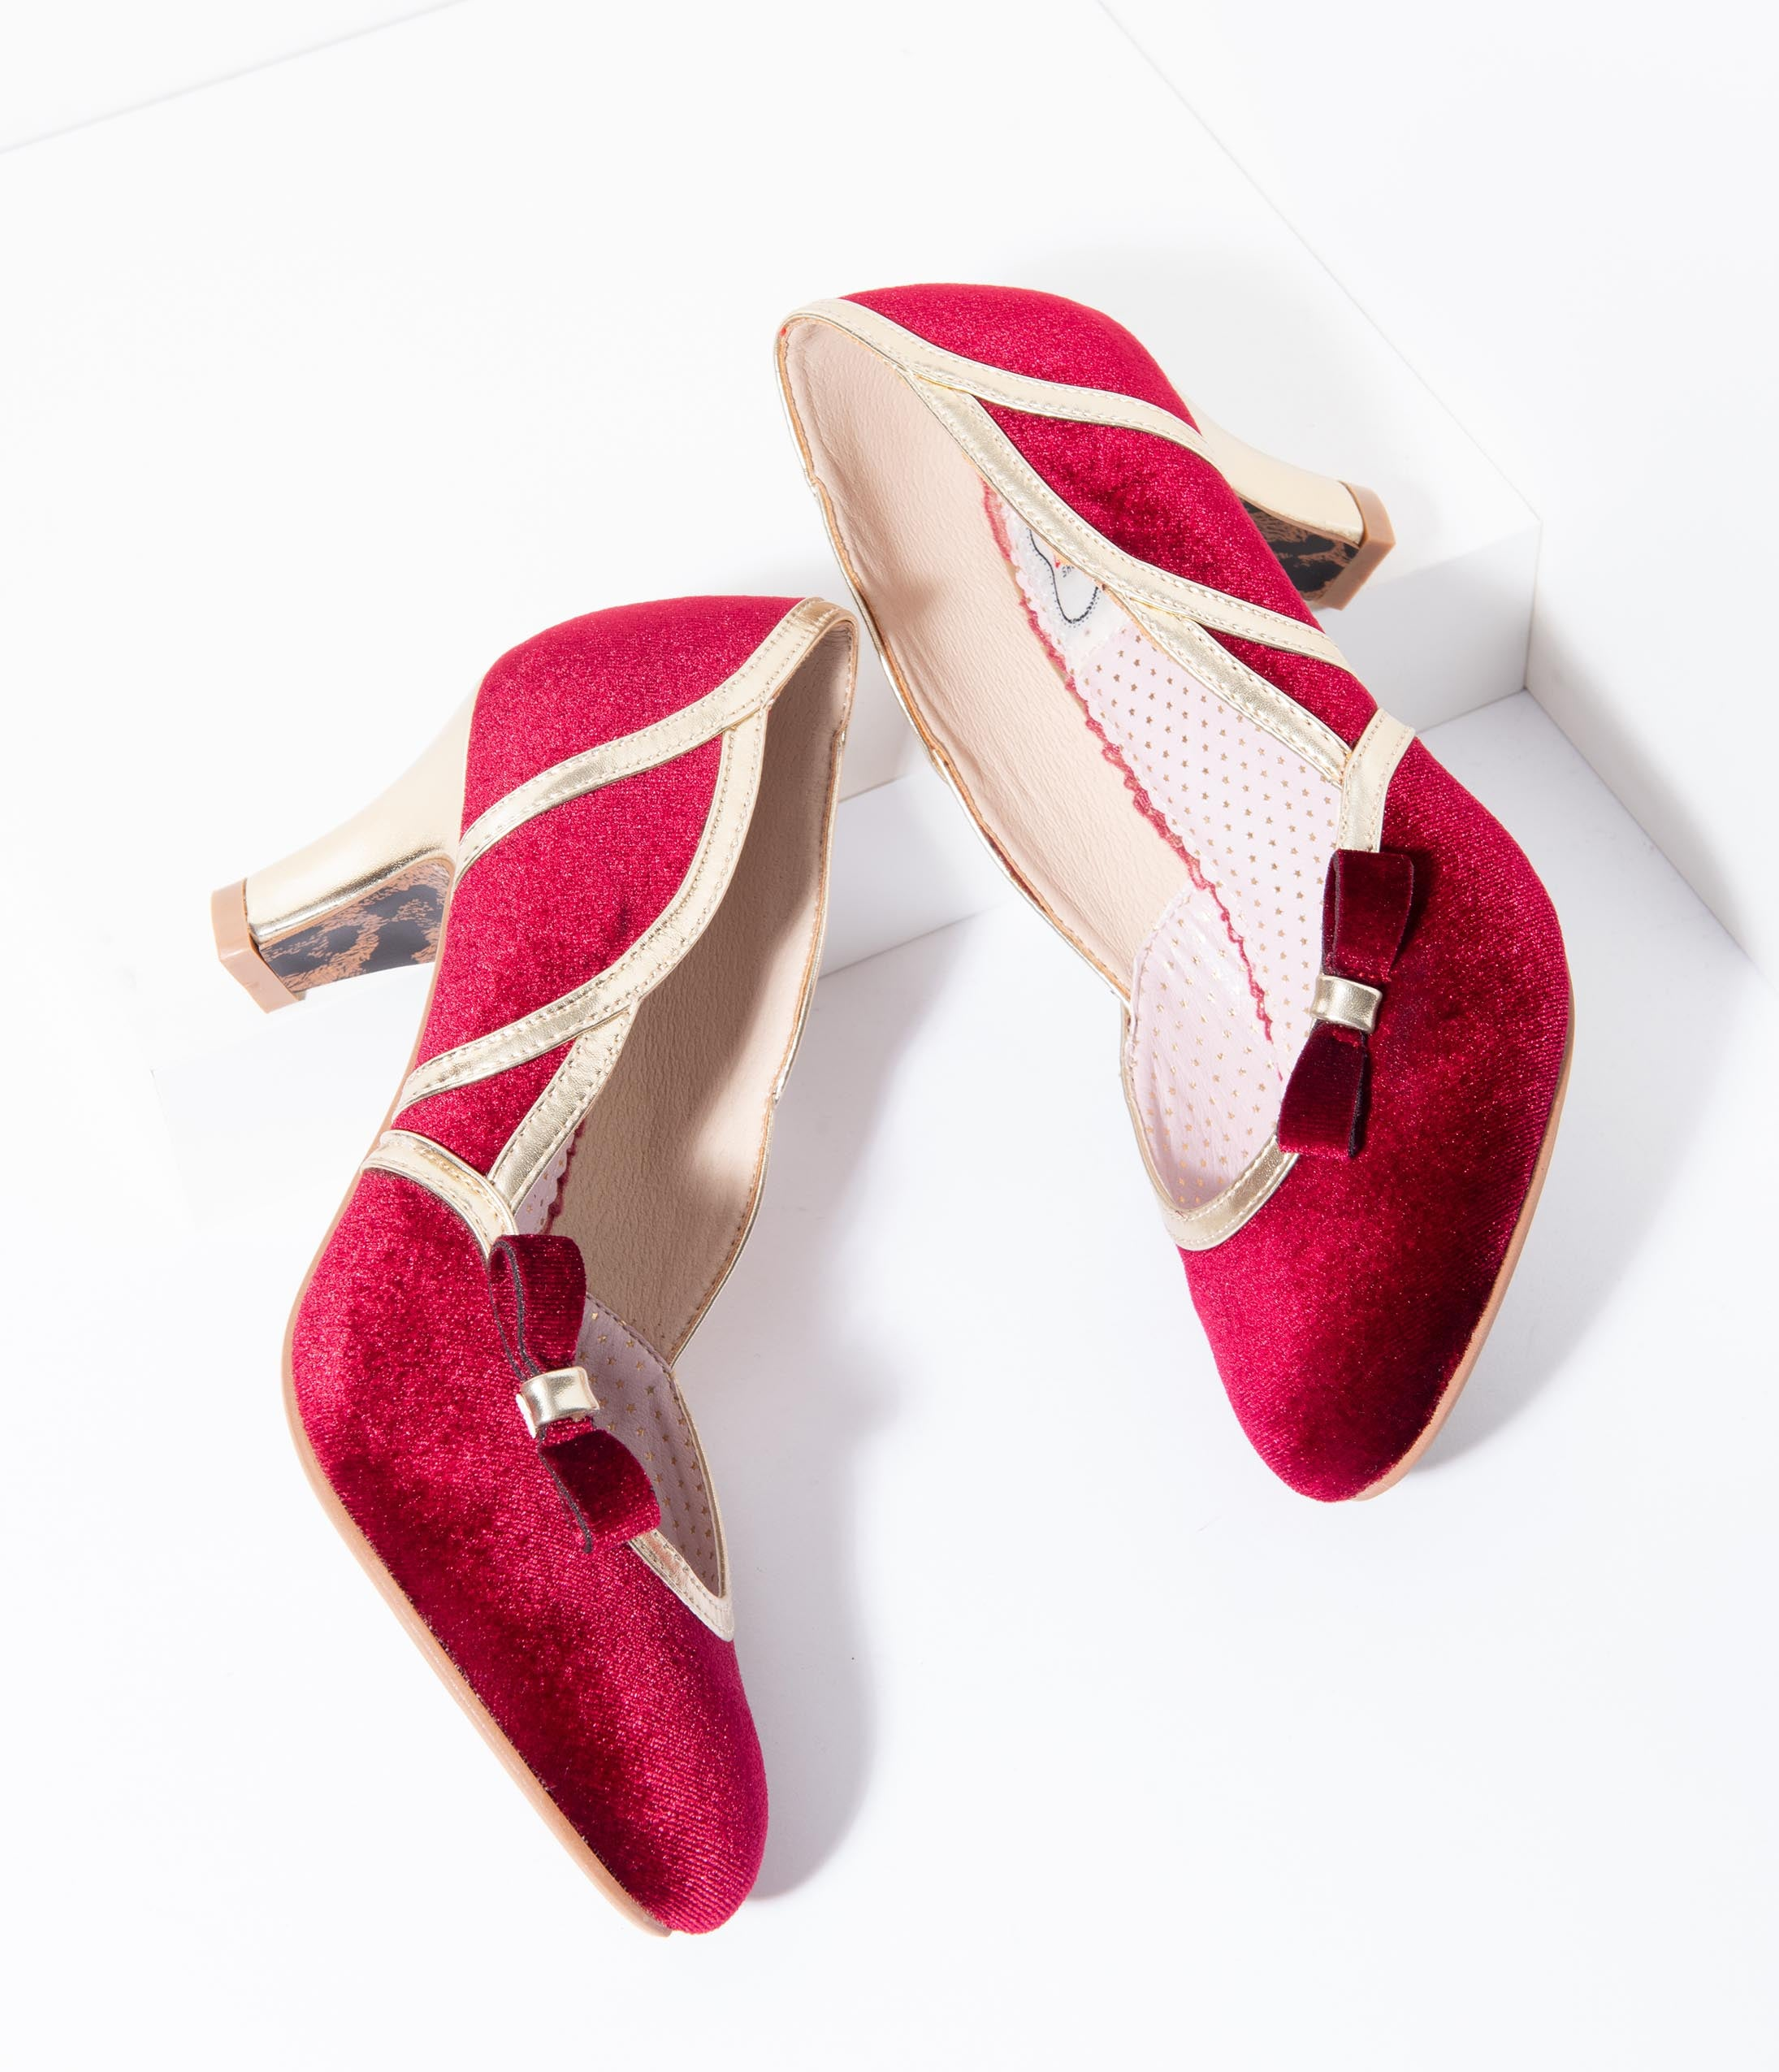 1920s Shoes UK – T-Bar, Oxfords, Flats Bettie Page 1950S Style Red Suede  Gold Trim Camille Heels $76.00 AT vintagedancer.com